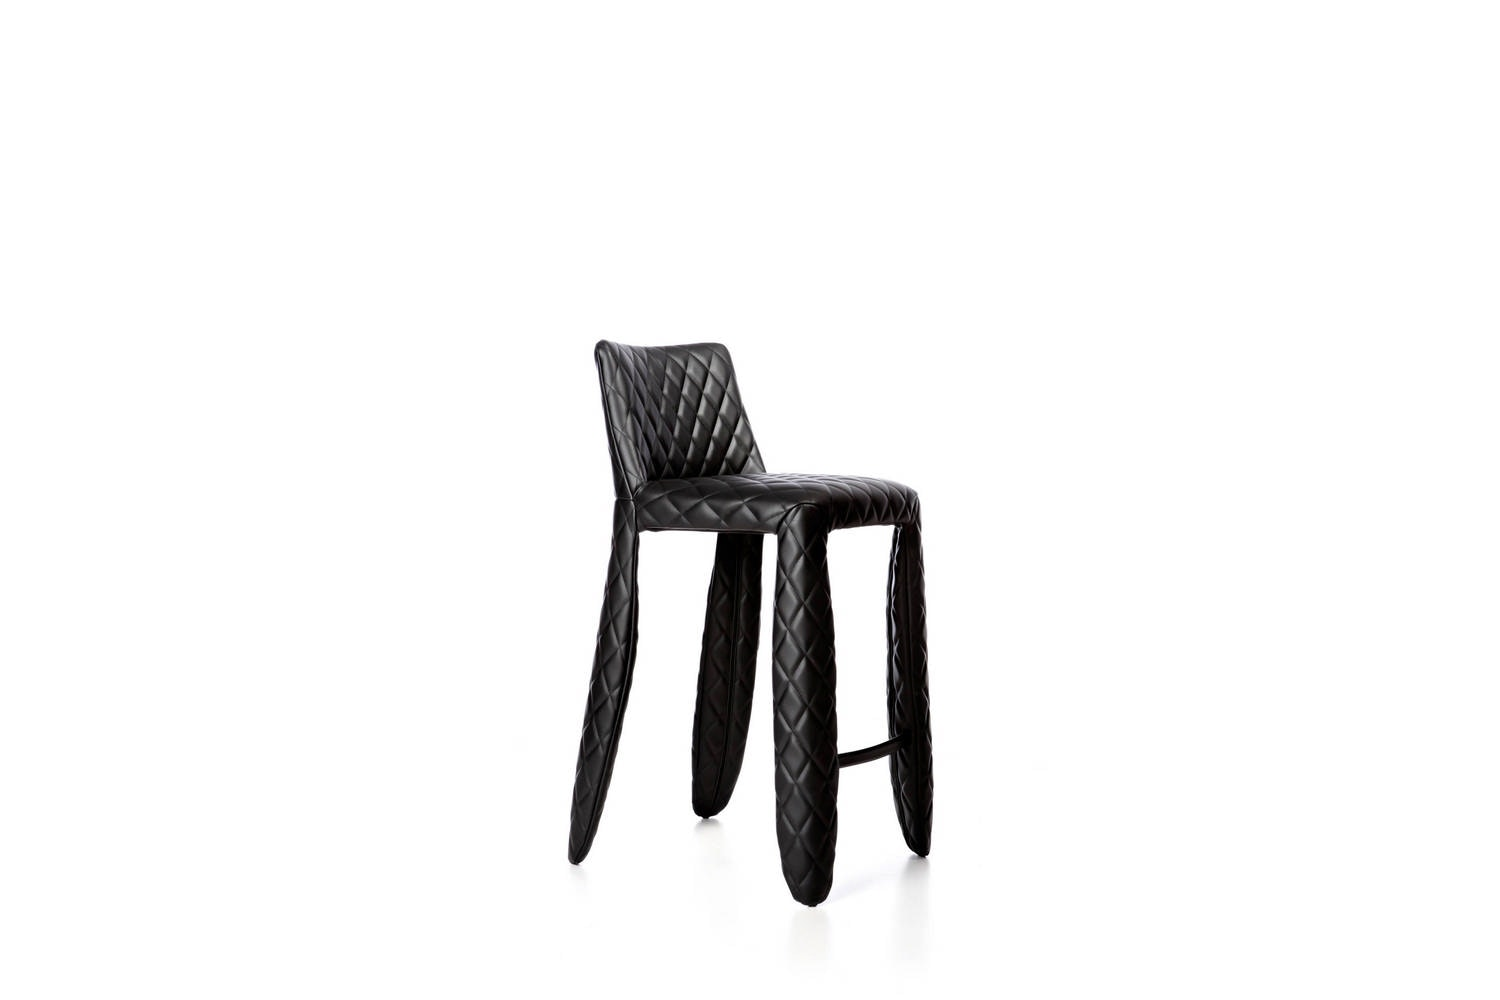 Monster Barstool by Marcel Wanders for Moooi